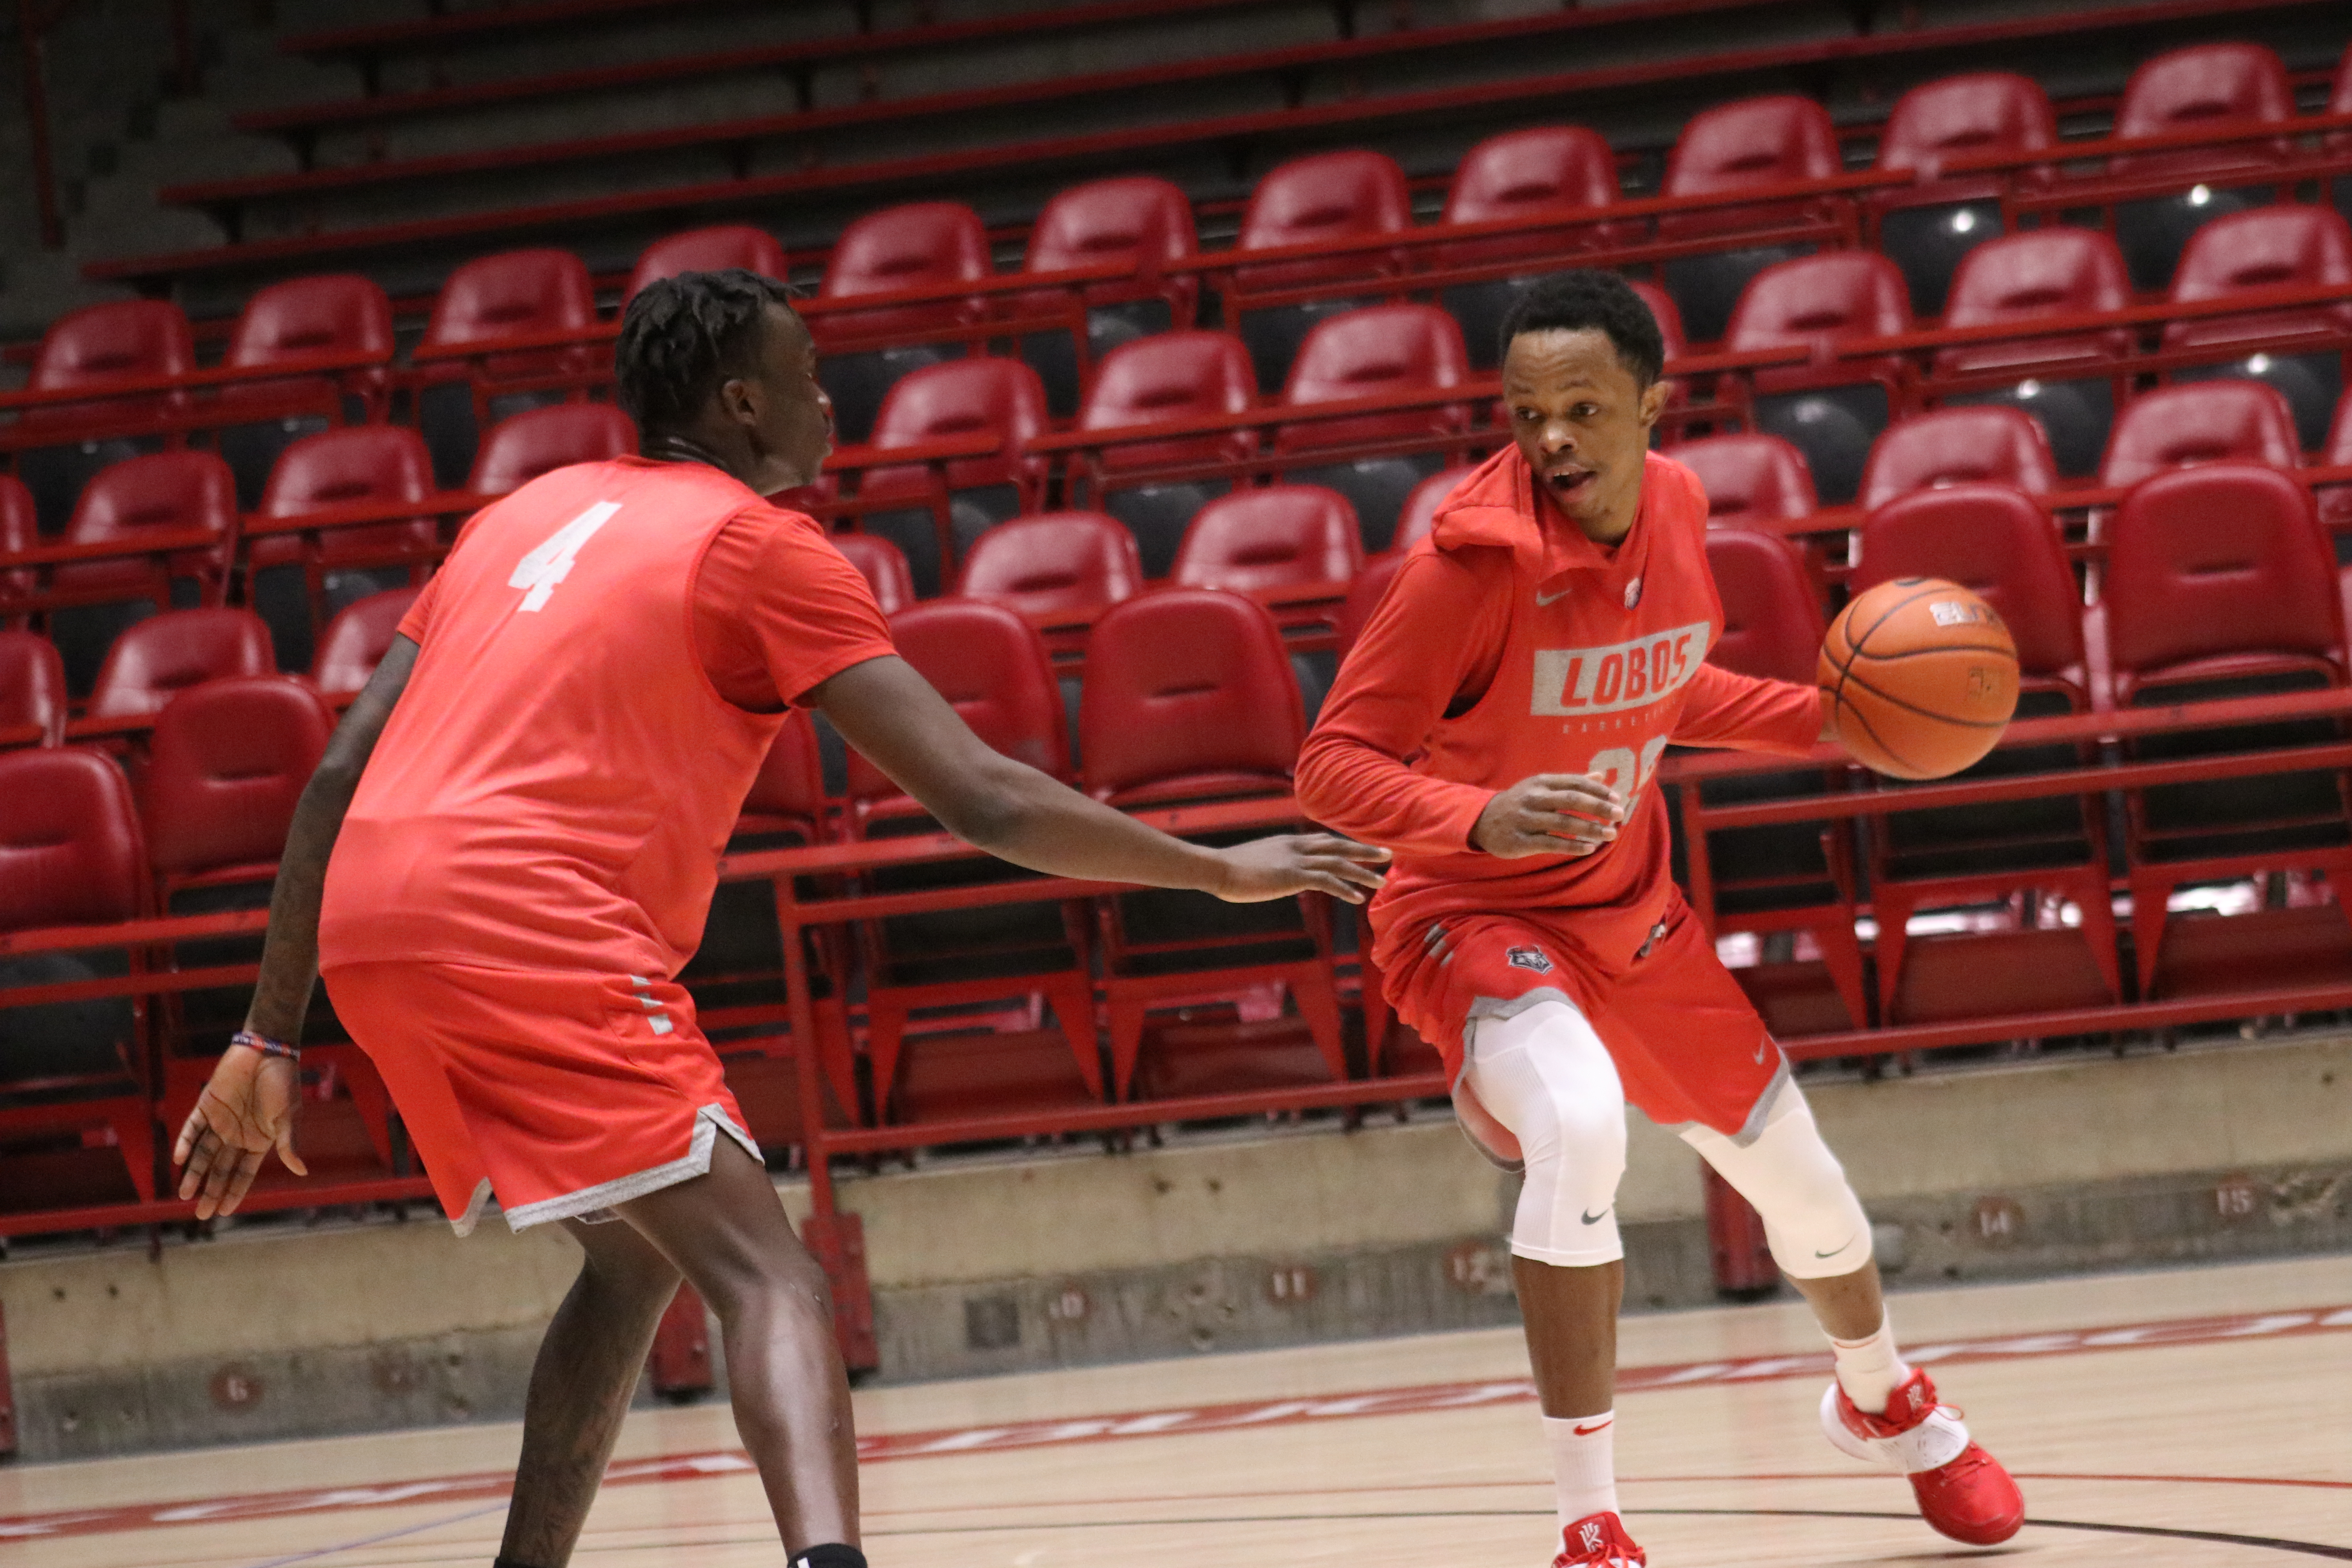 Lobos happy to be back home, even if briefly